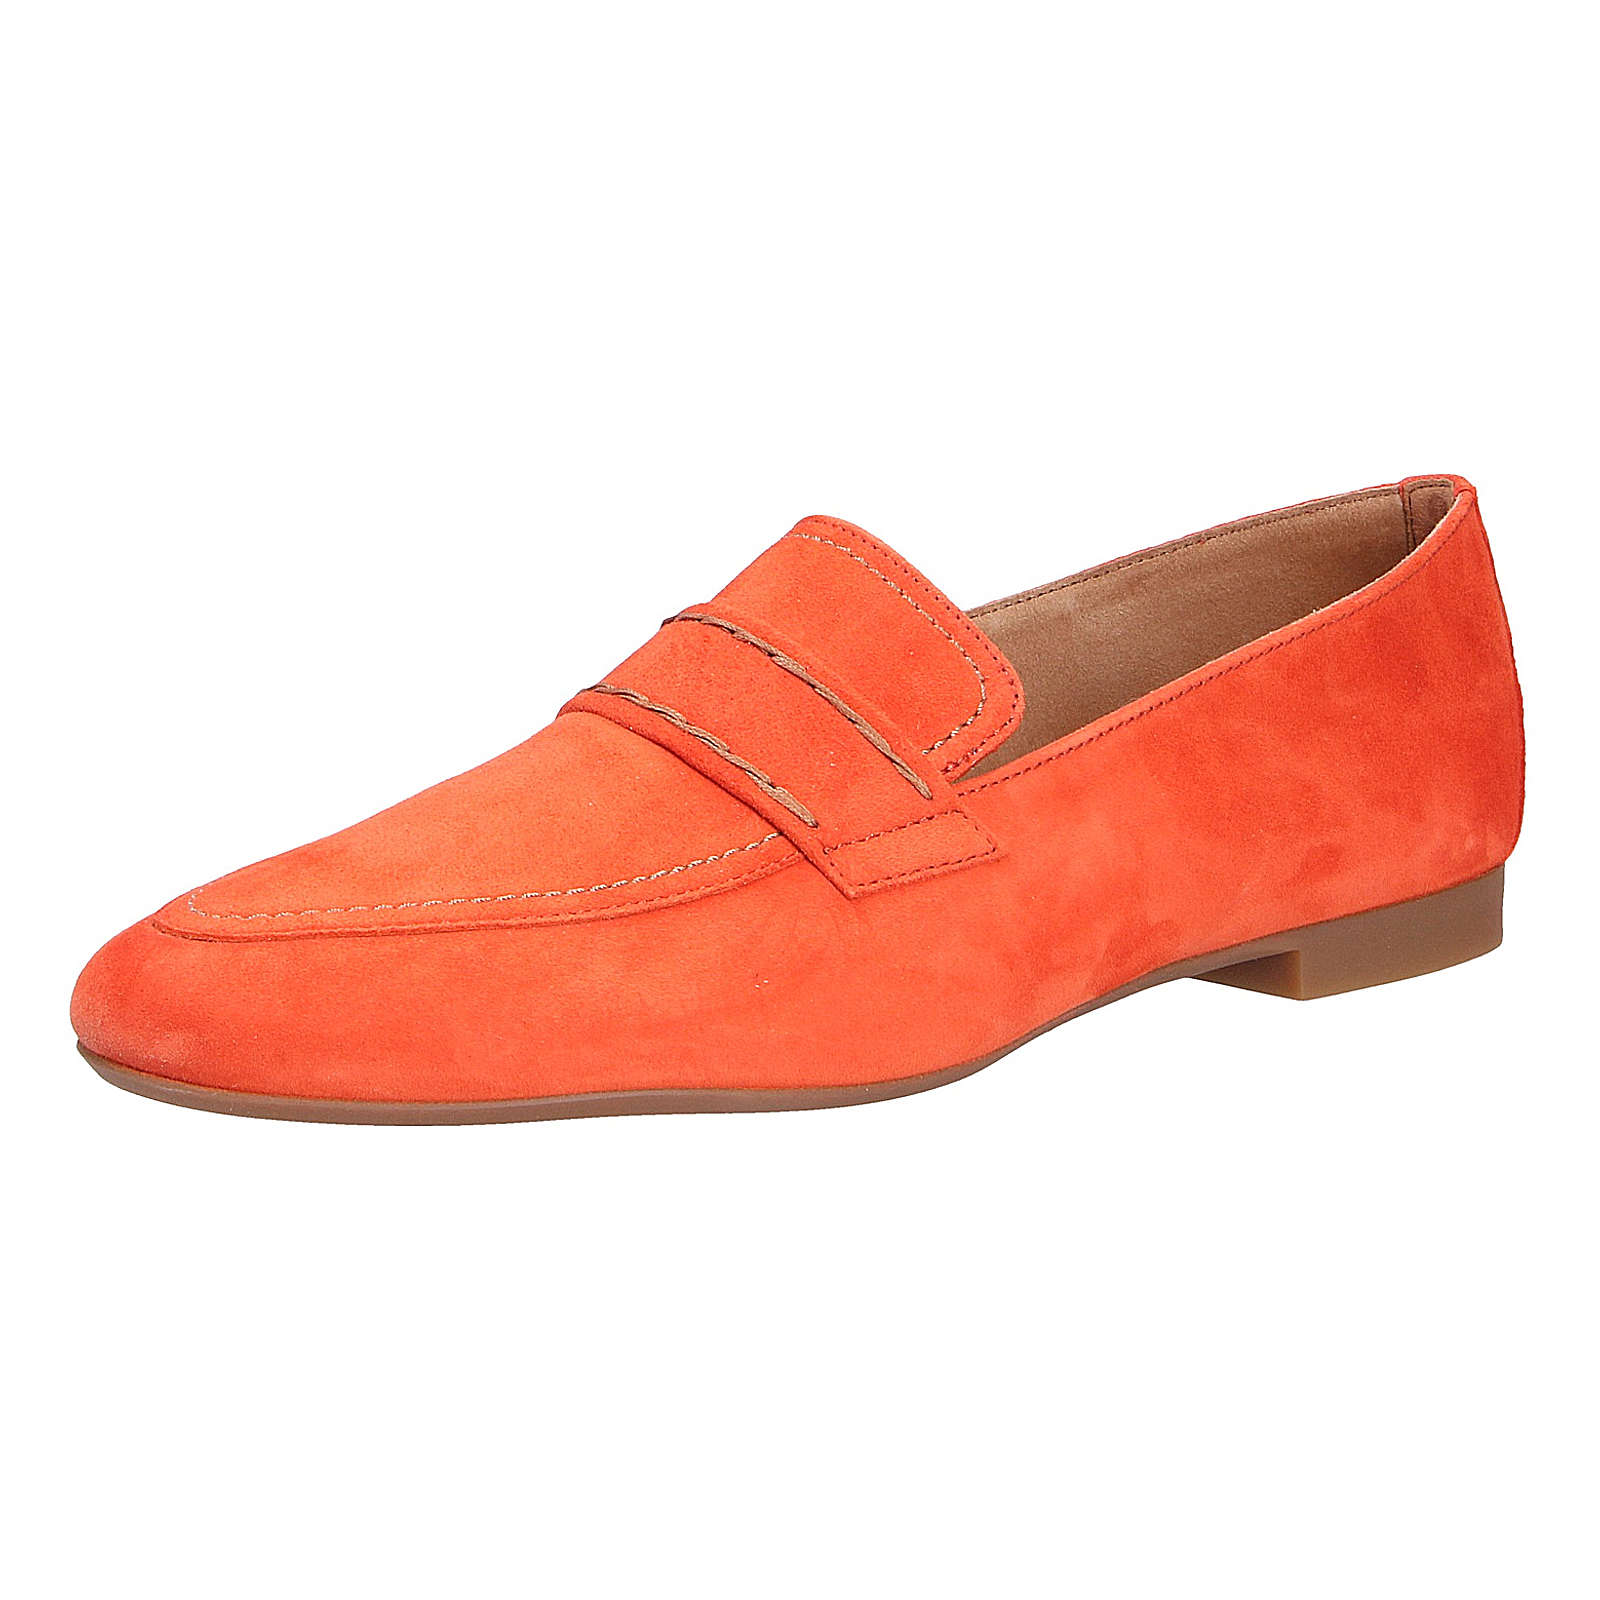 Paul Green Fashion Slipper Komfort-Slipper orange Damen Gr. 39